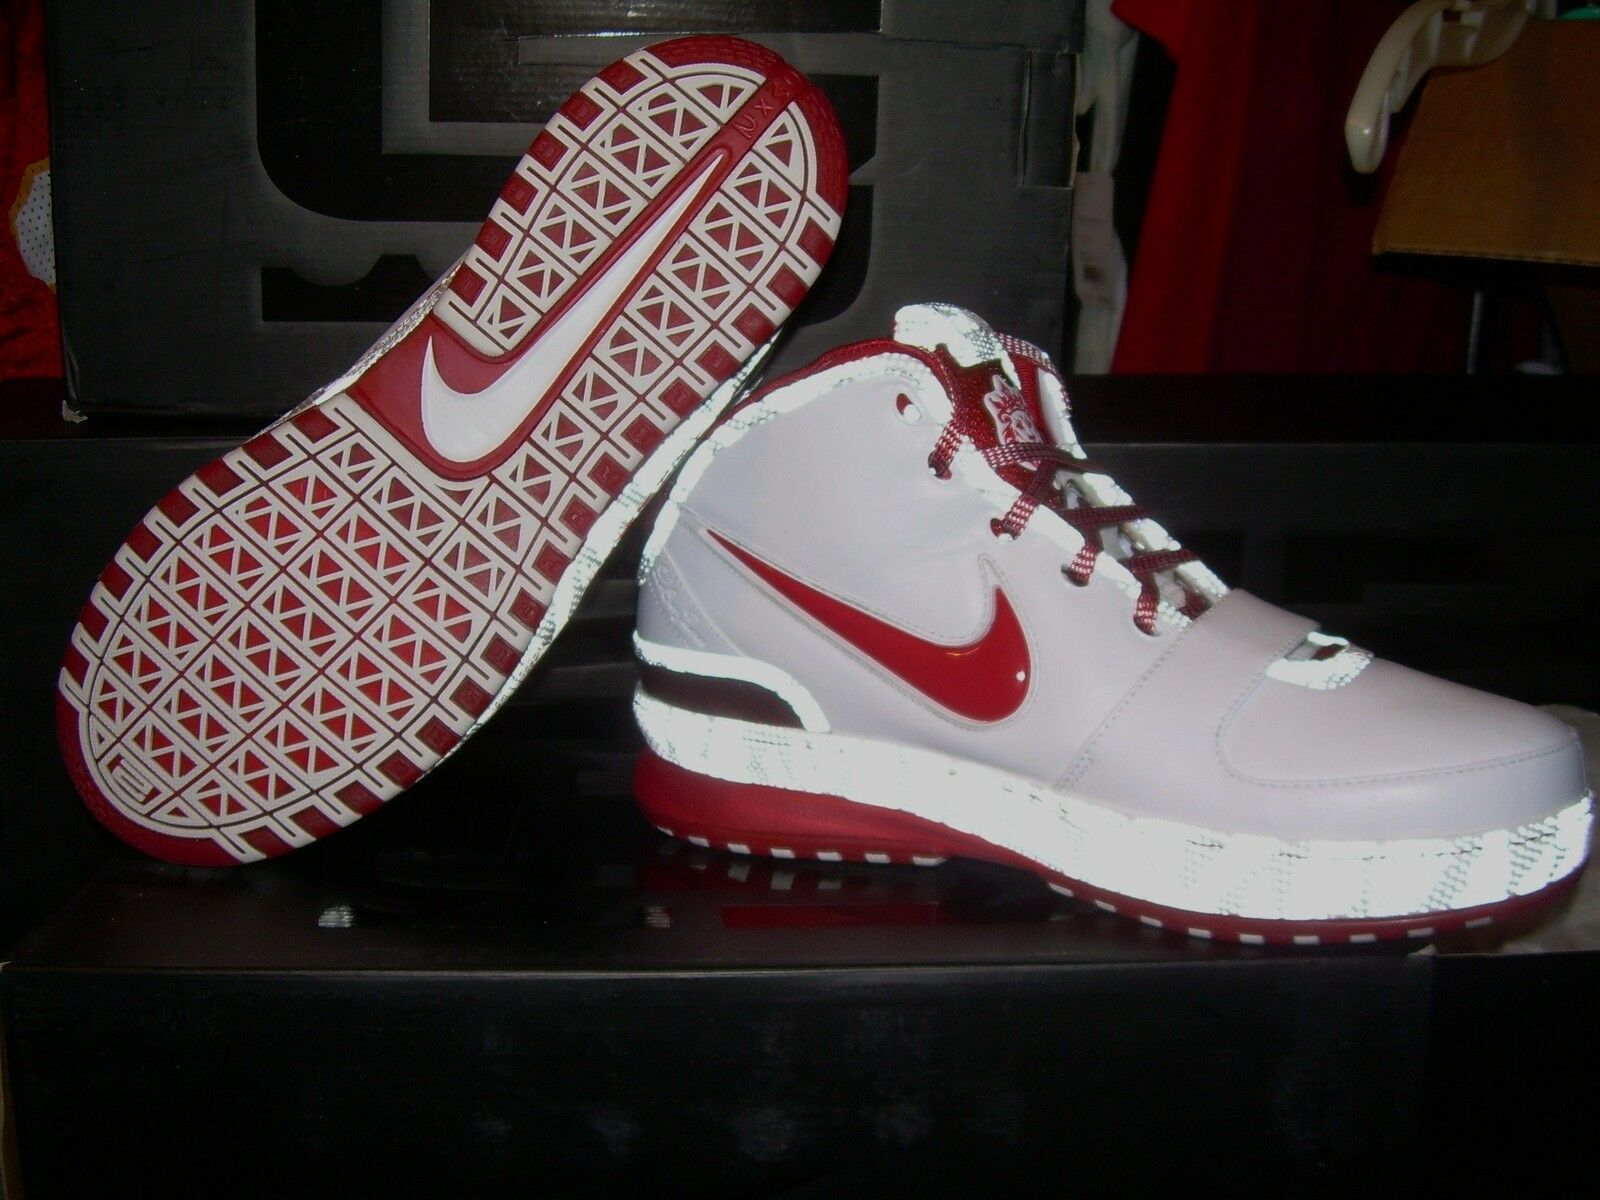 2018 NIKE AIR ZOOM LEBRON VI 6 OHIO STATE Comfortable best-selling model of the brand